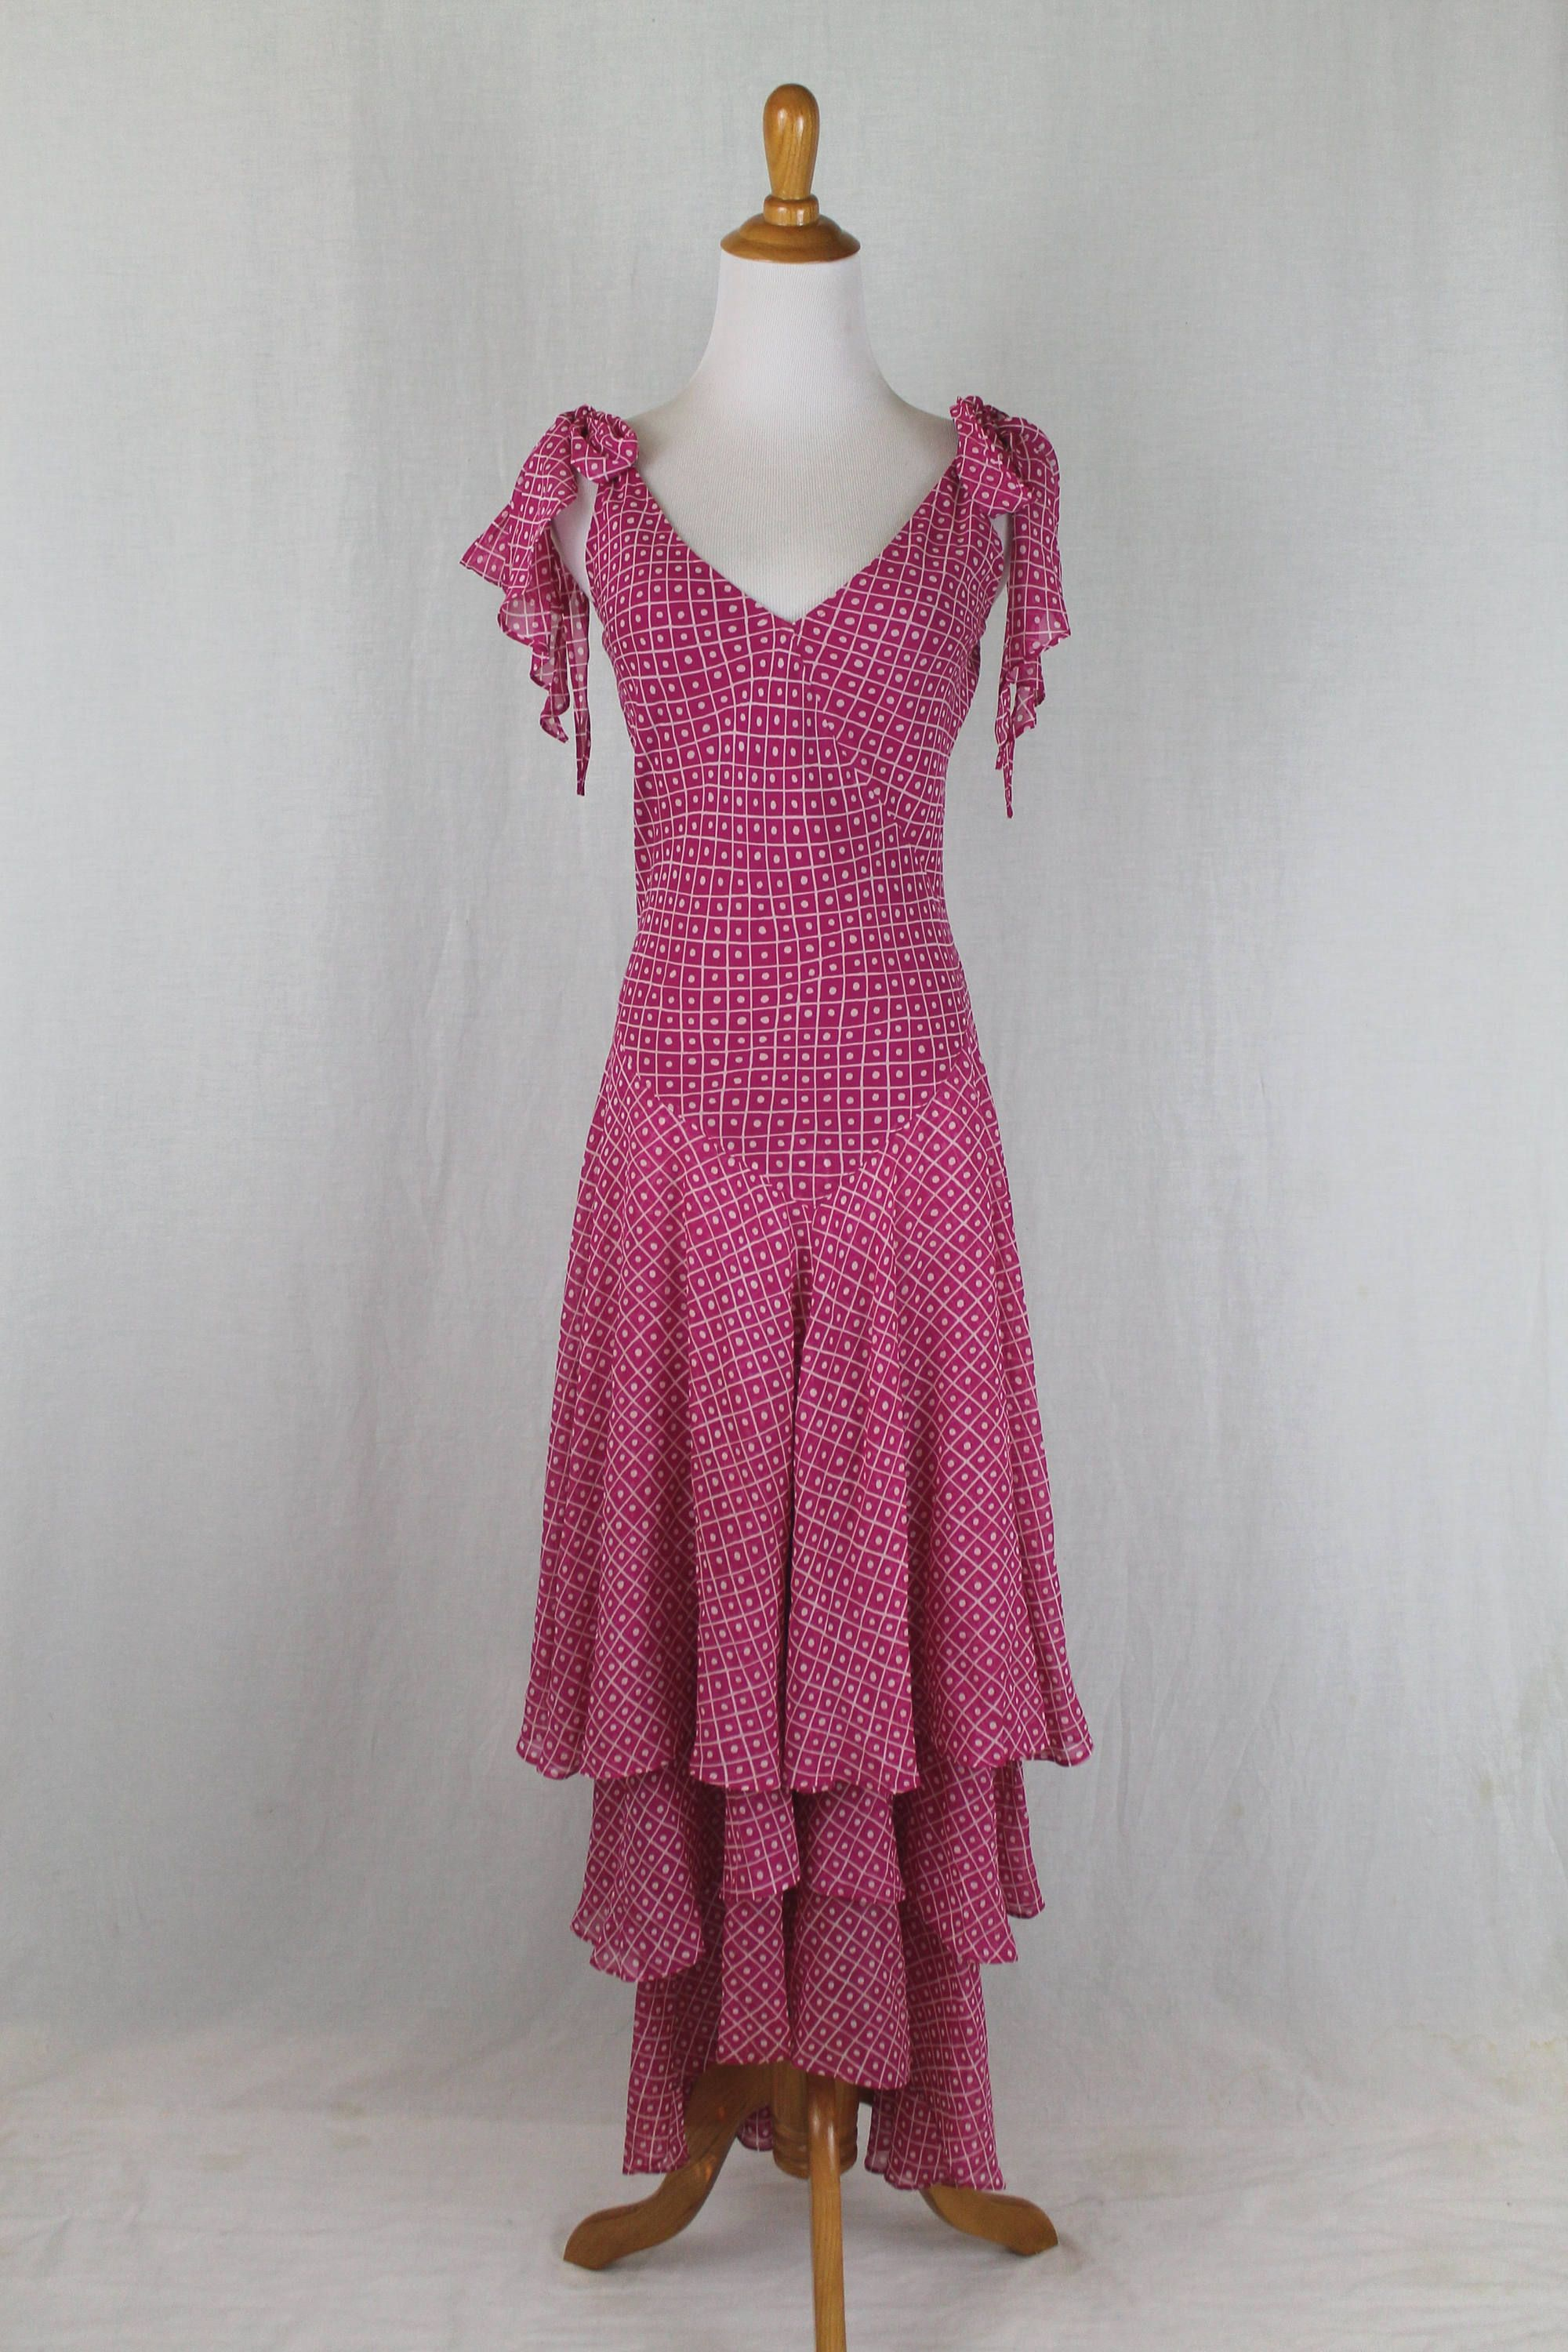 25a771bb81 Vintage Celia Birtwell for Express Iconic Long Flowing Rose Pink Silk Maxi  Dress Gown USA Size 4 UK 6 EU 34 France 36 Japan 7 36 by GlamArchive2017 on  Etsy